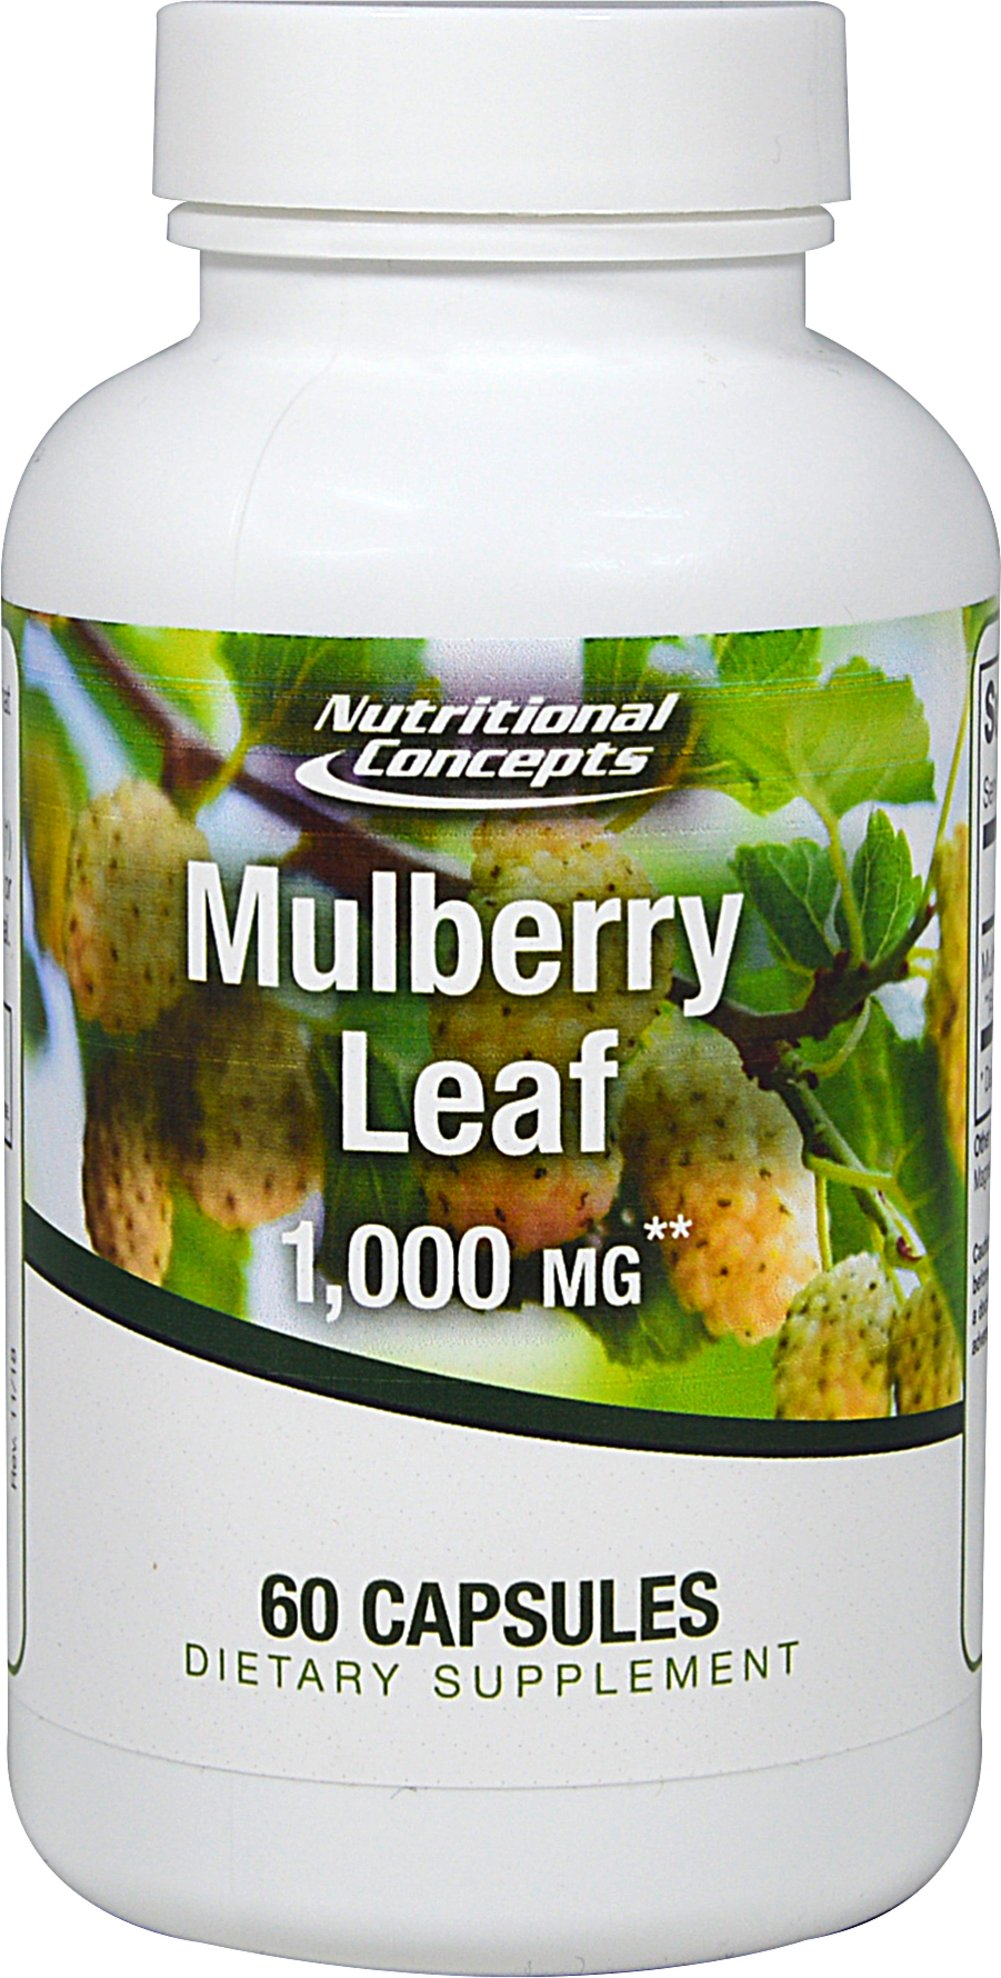 White Mulberry Leaf Extract 1,000 mg  60 Capsules